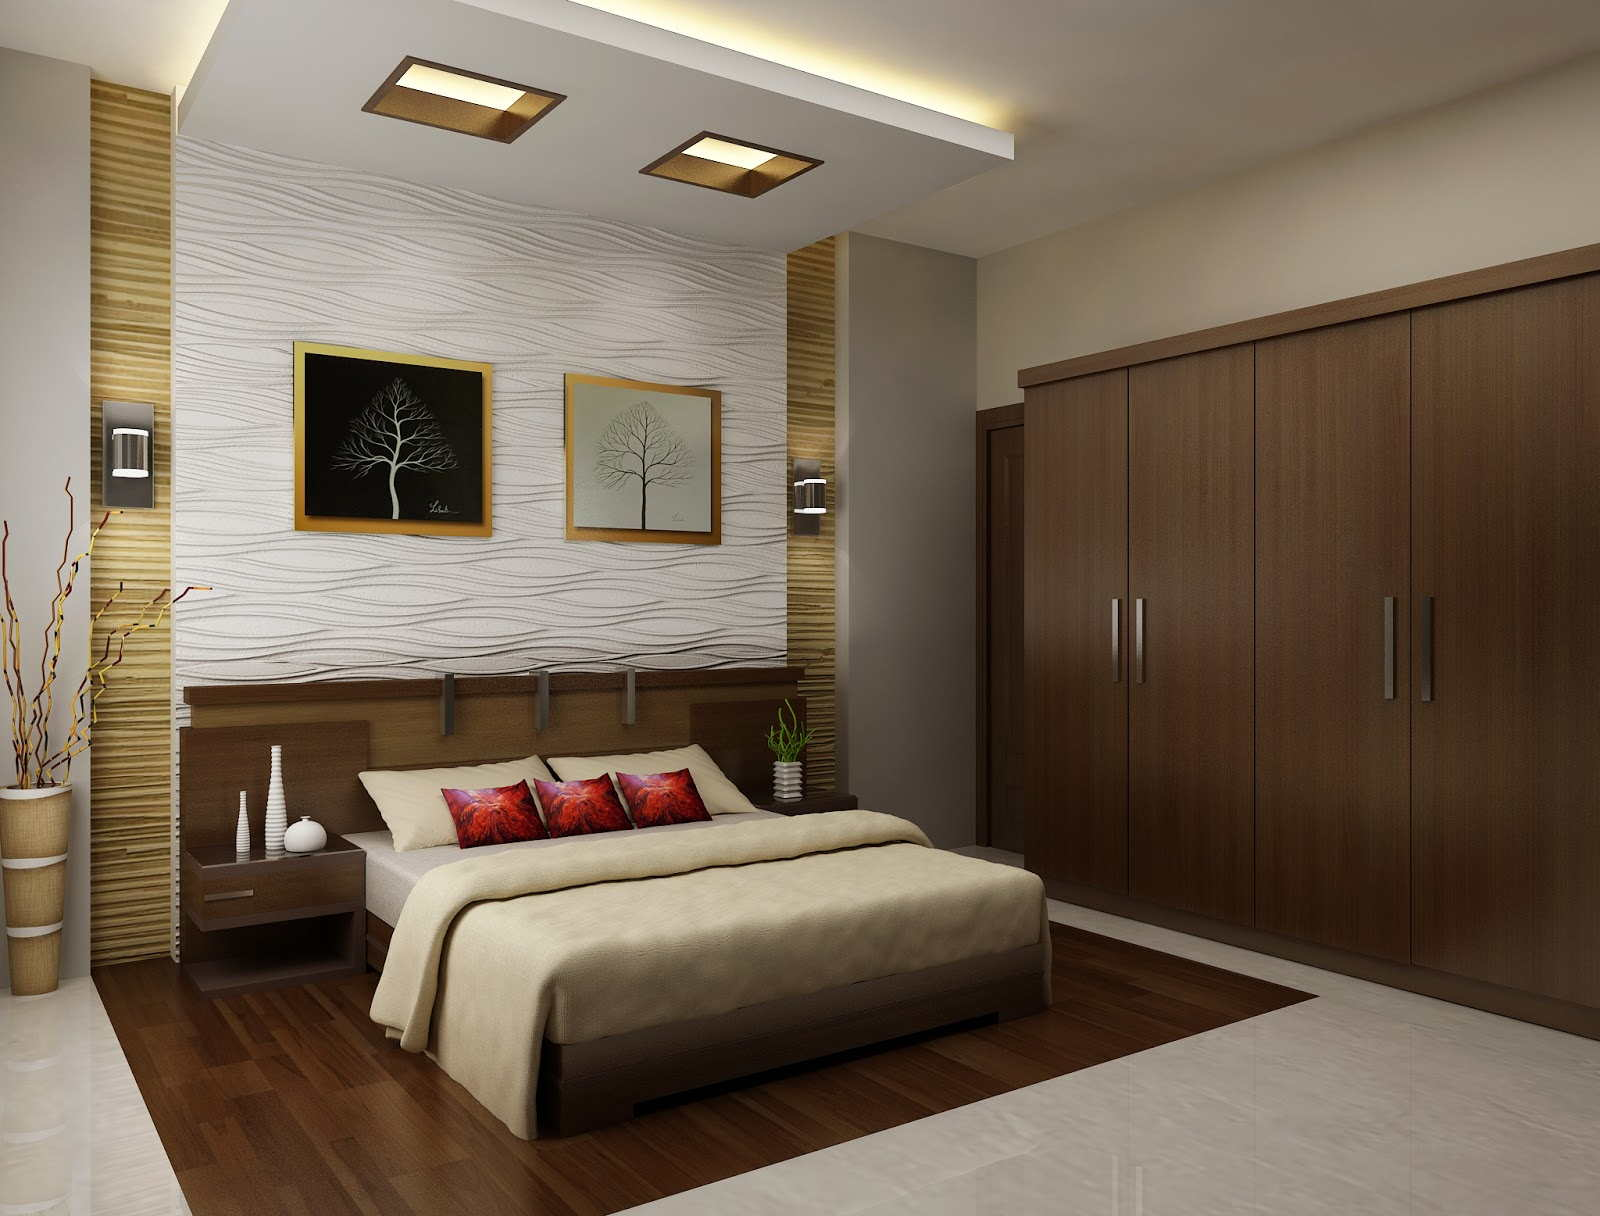 11 attractive bedroom design ideas that will make your - Interior design for bedroom in india ...